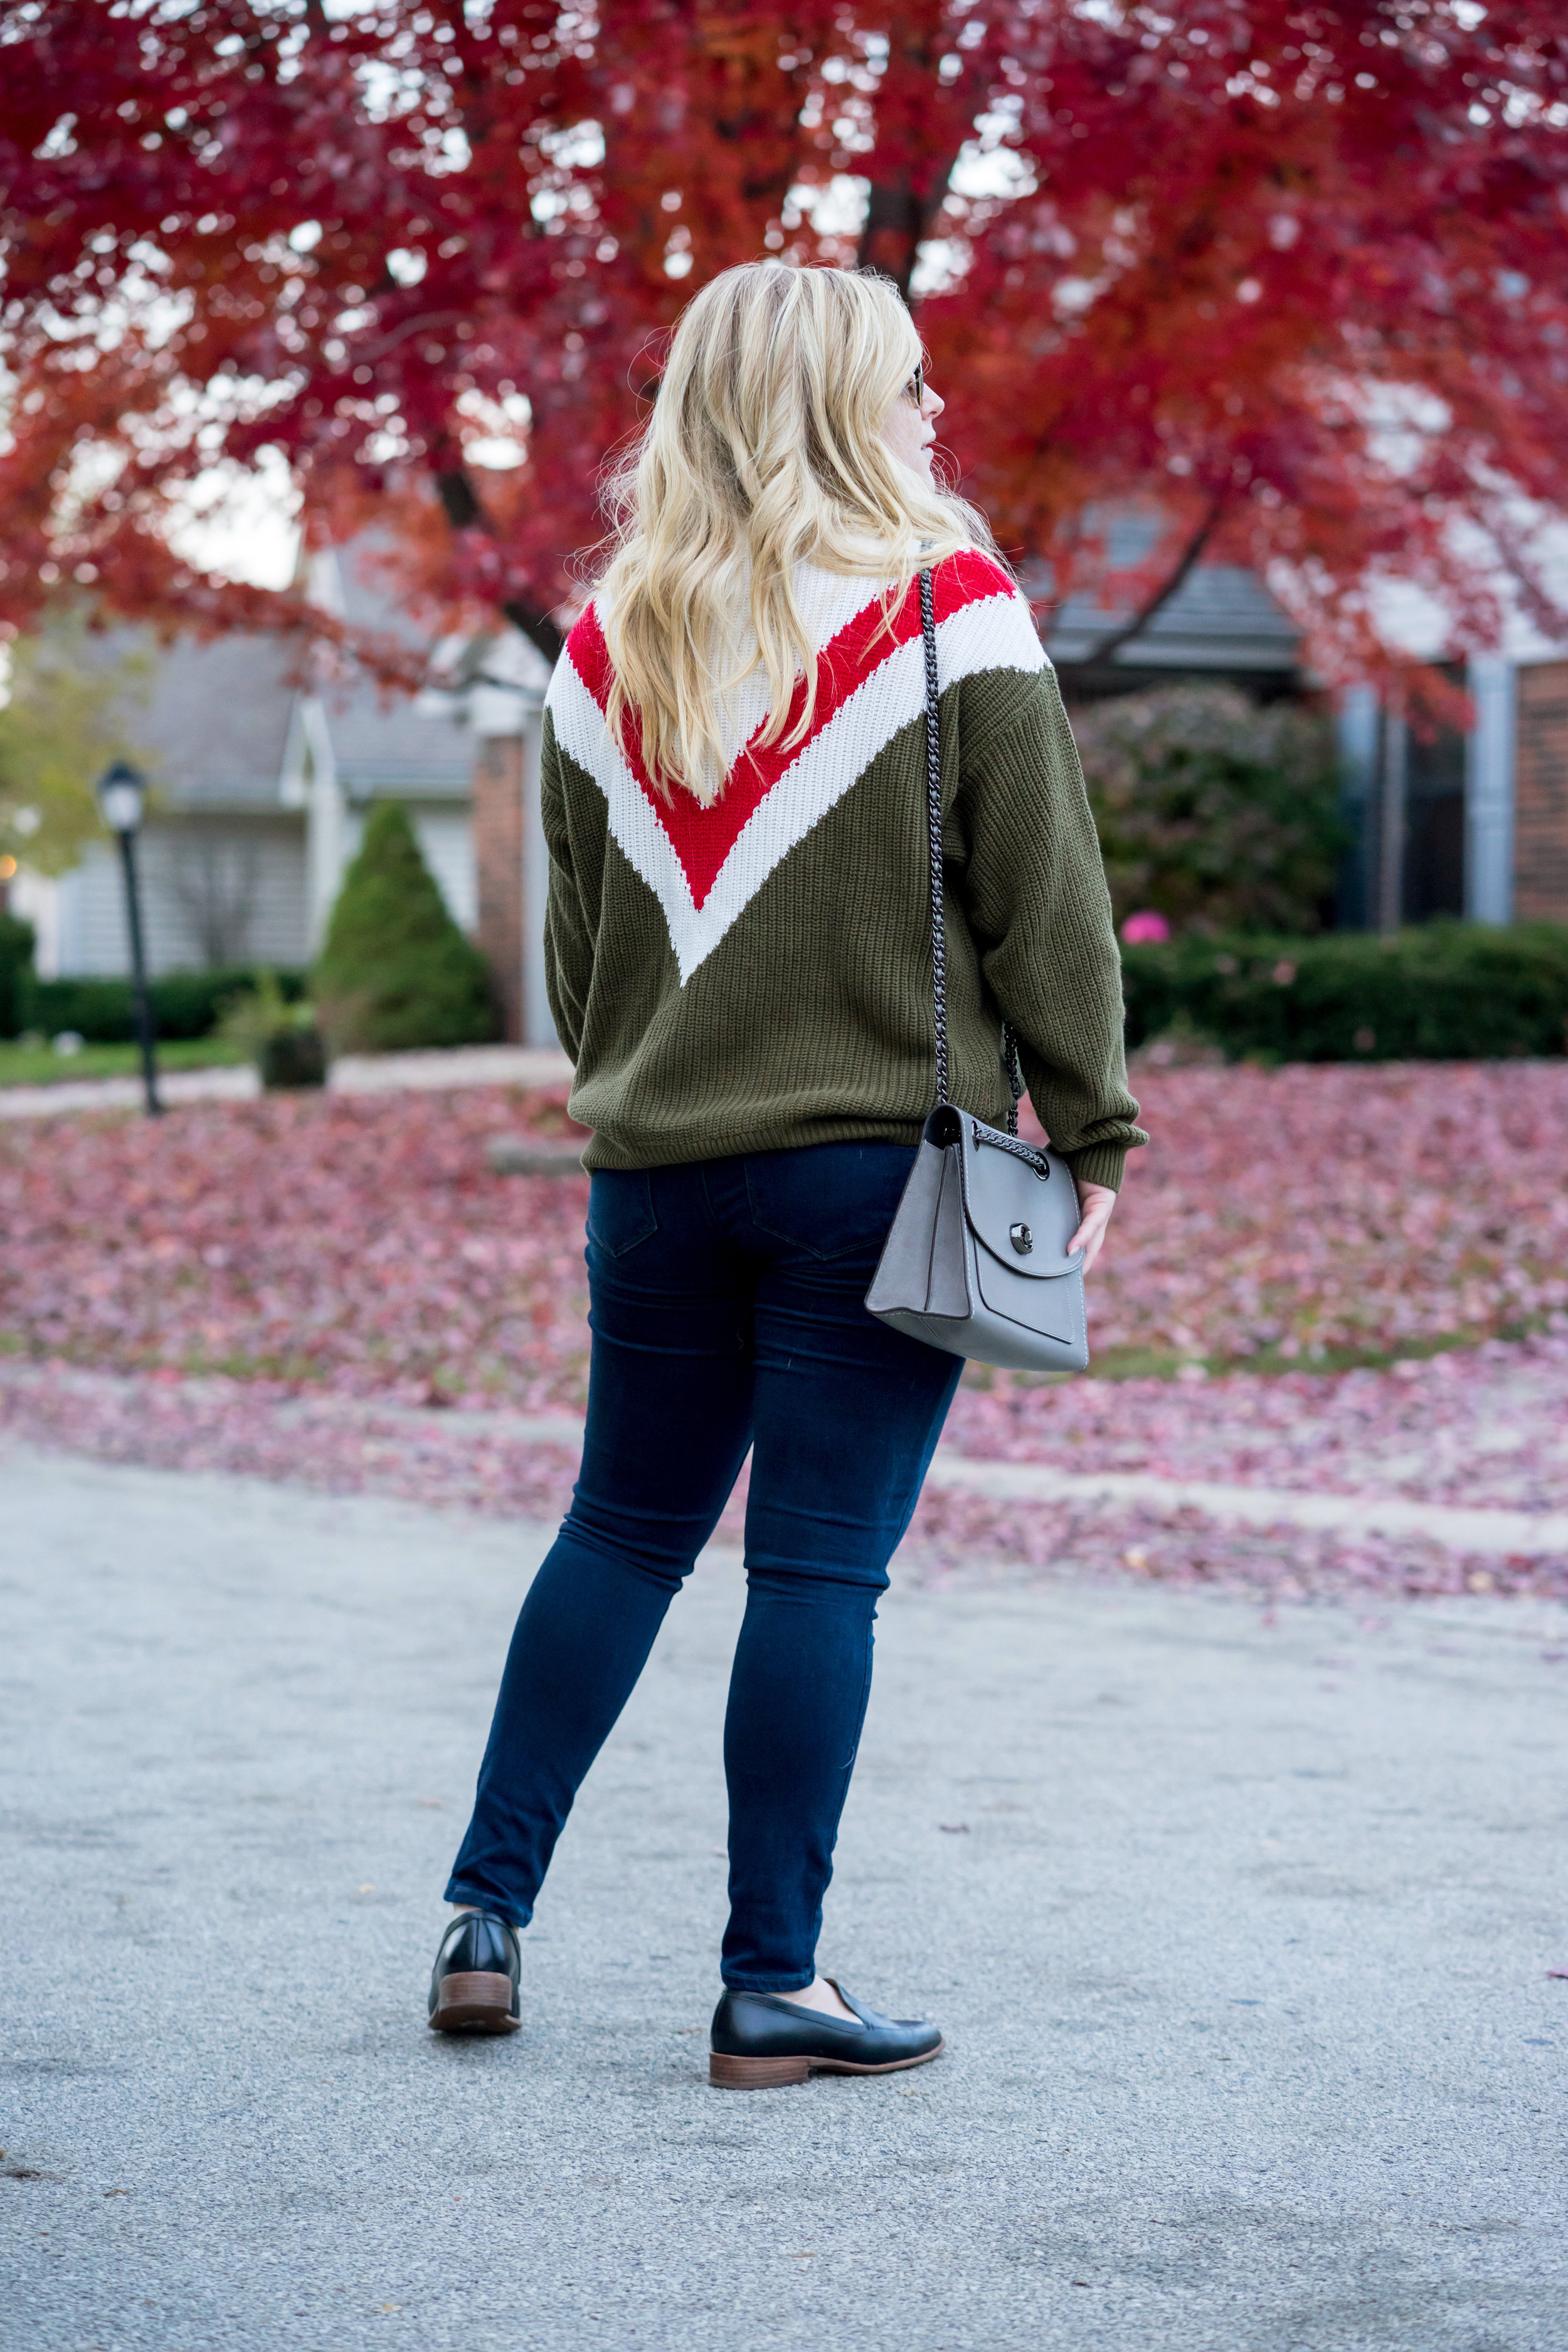 Maggie a la Mode - Favorite Finds at Mango, Mango Tricolor Cotton Josh Sweater Khaki, Paige Verdugo Ankle Skinny Jeans, Coach Parker Shoulder Bag, Madewell Frances Loafer